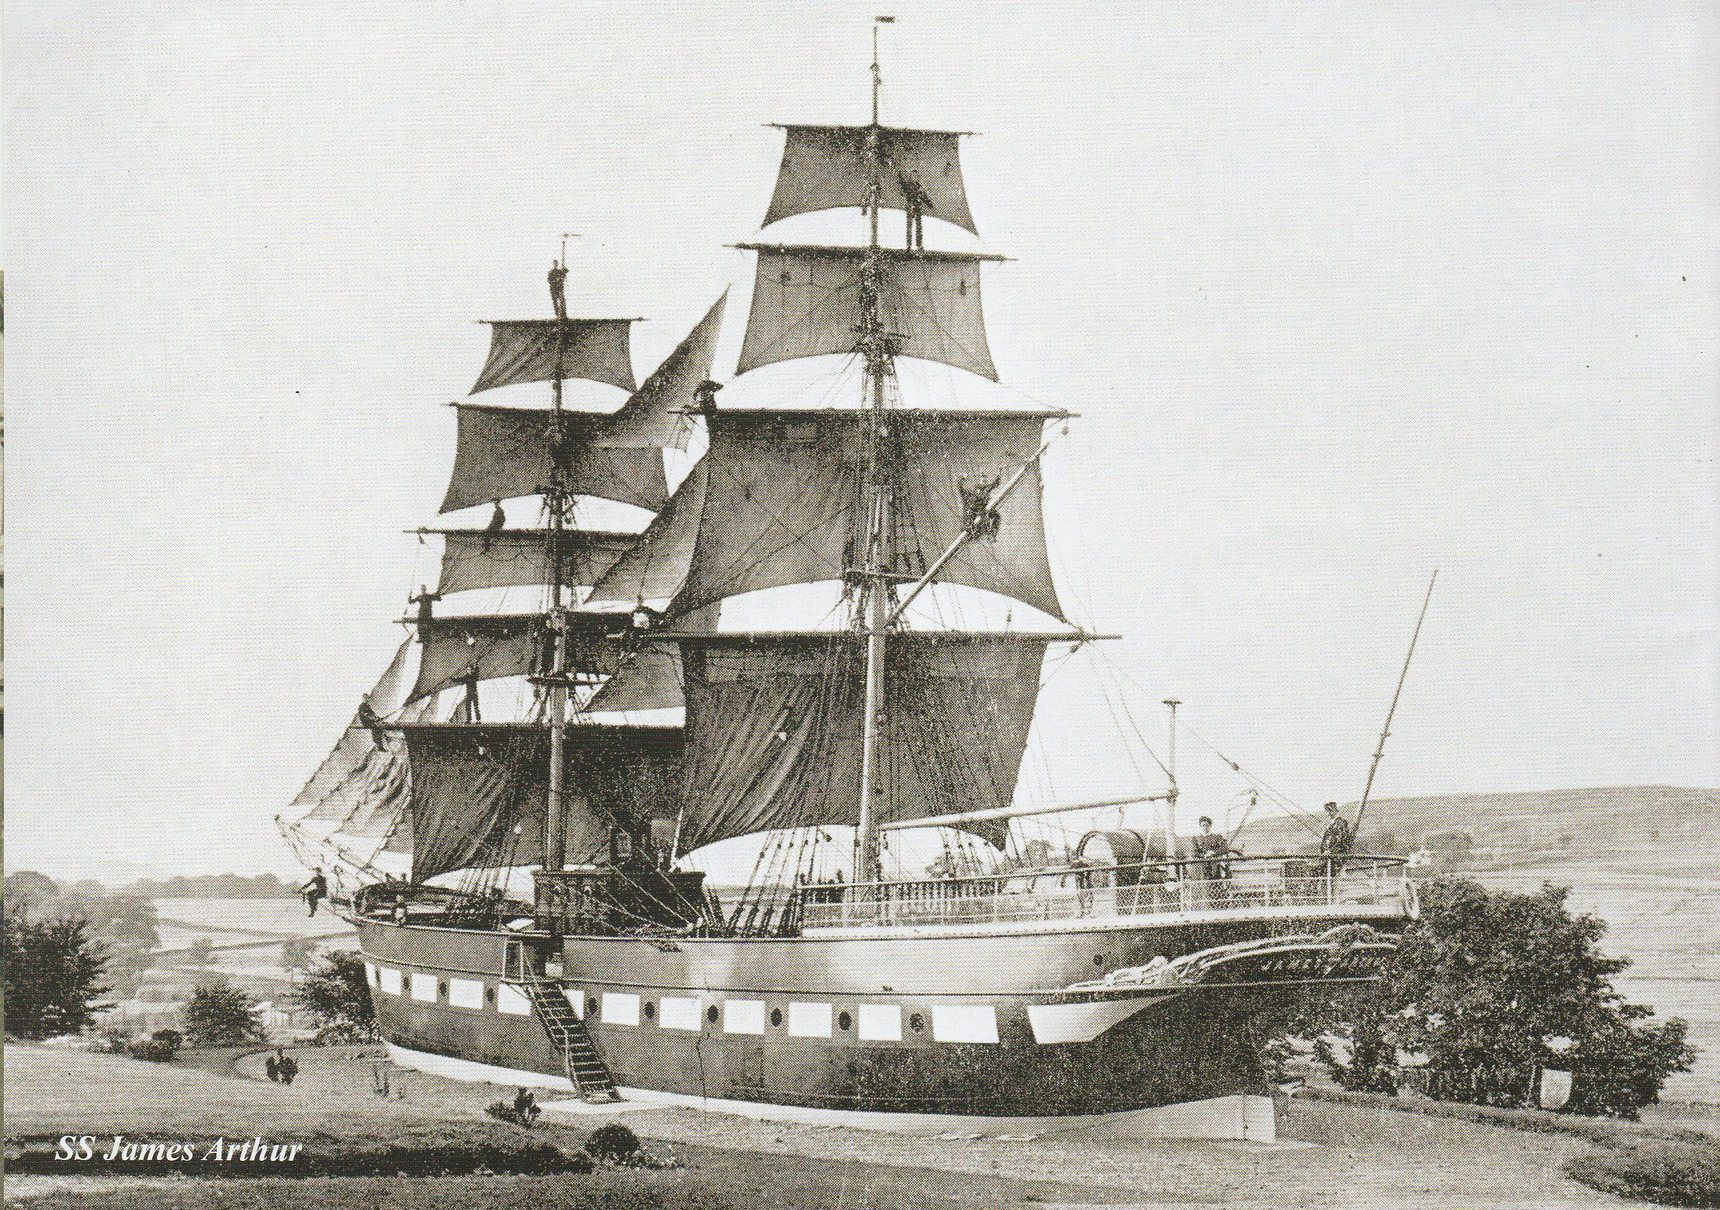 It's possible that John my mother's brother could have trained on this training ship.